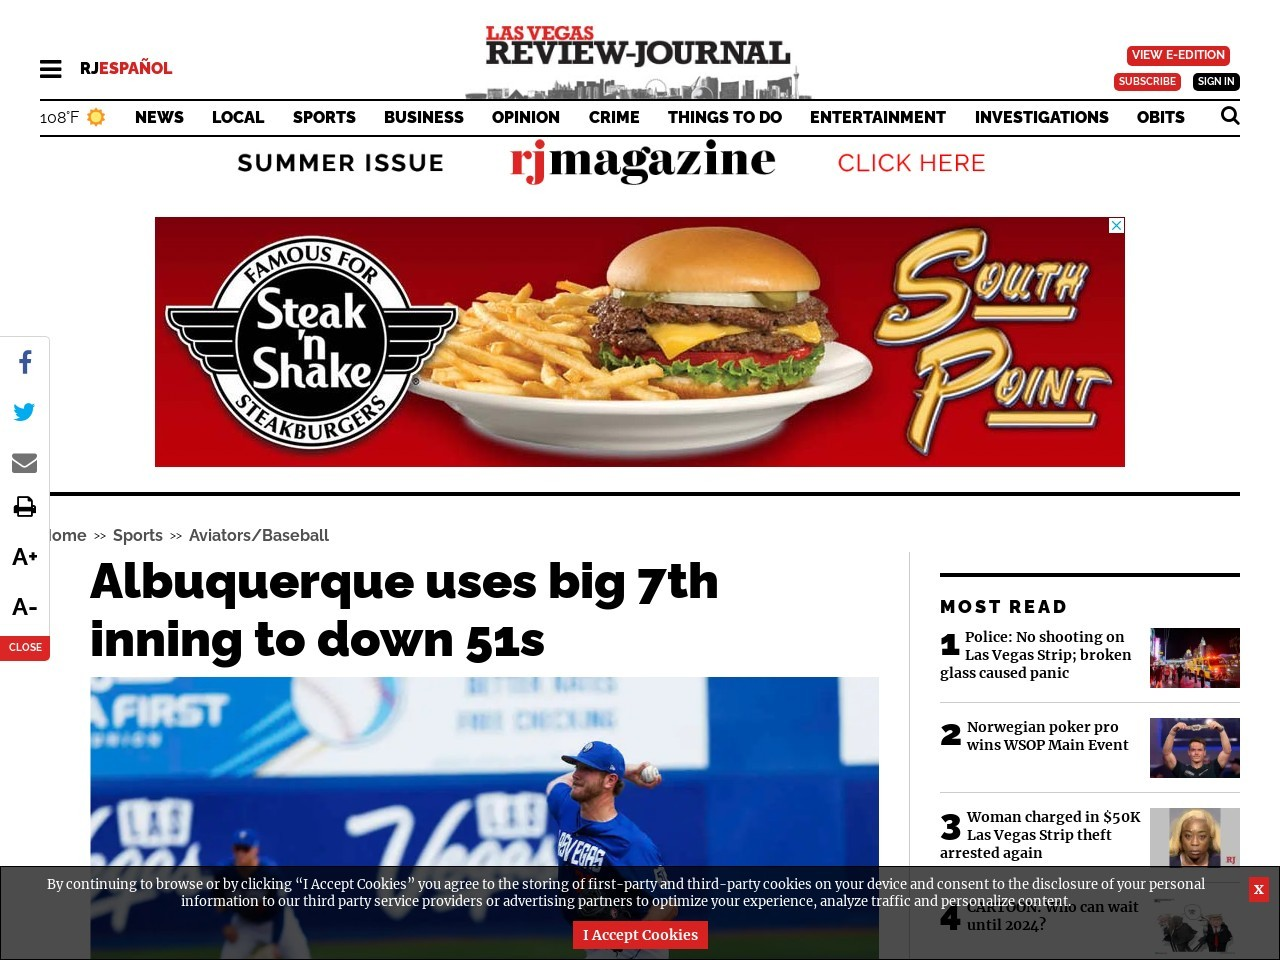 Albuquerque uses big 7th inning to down 51s